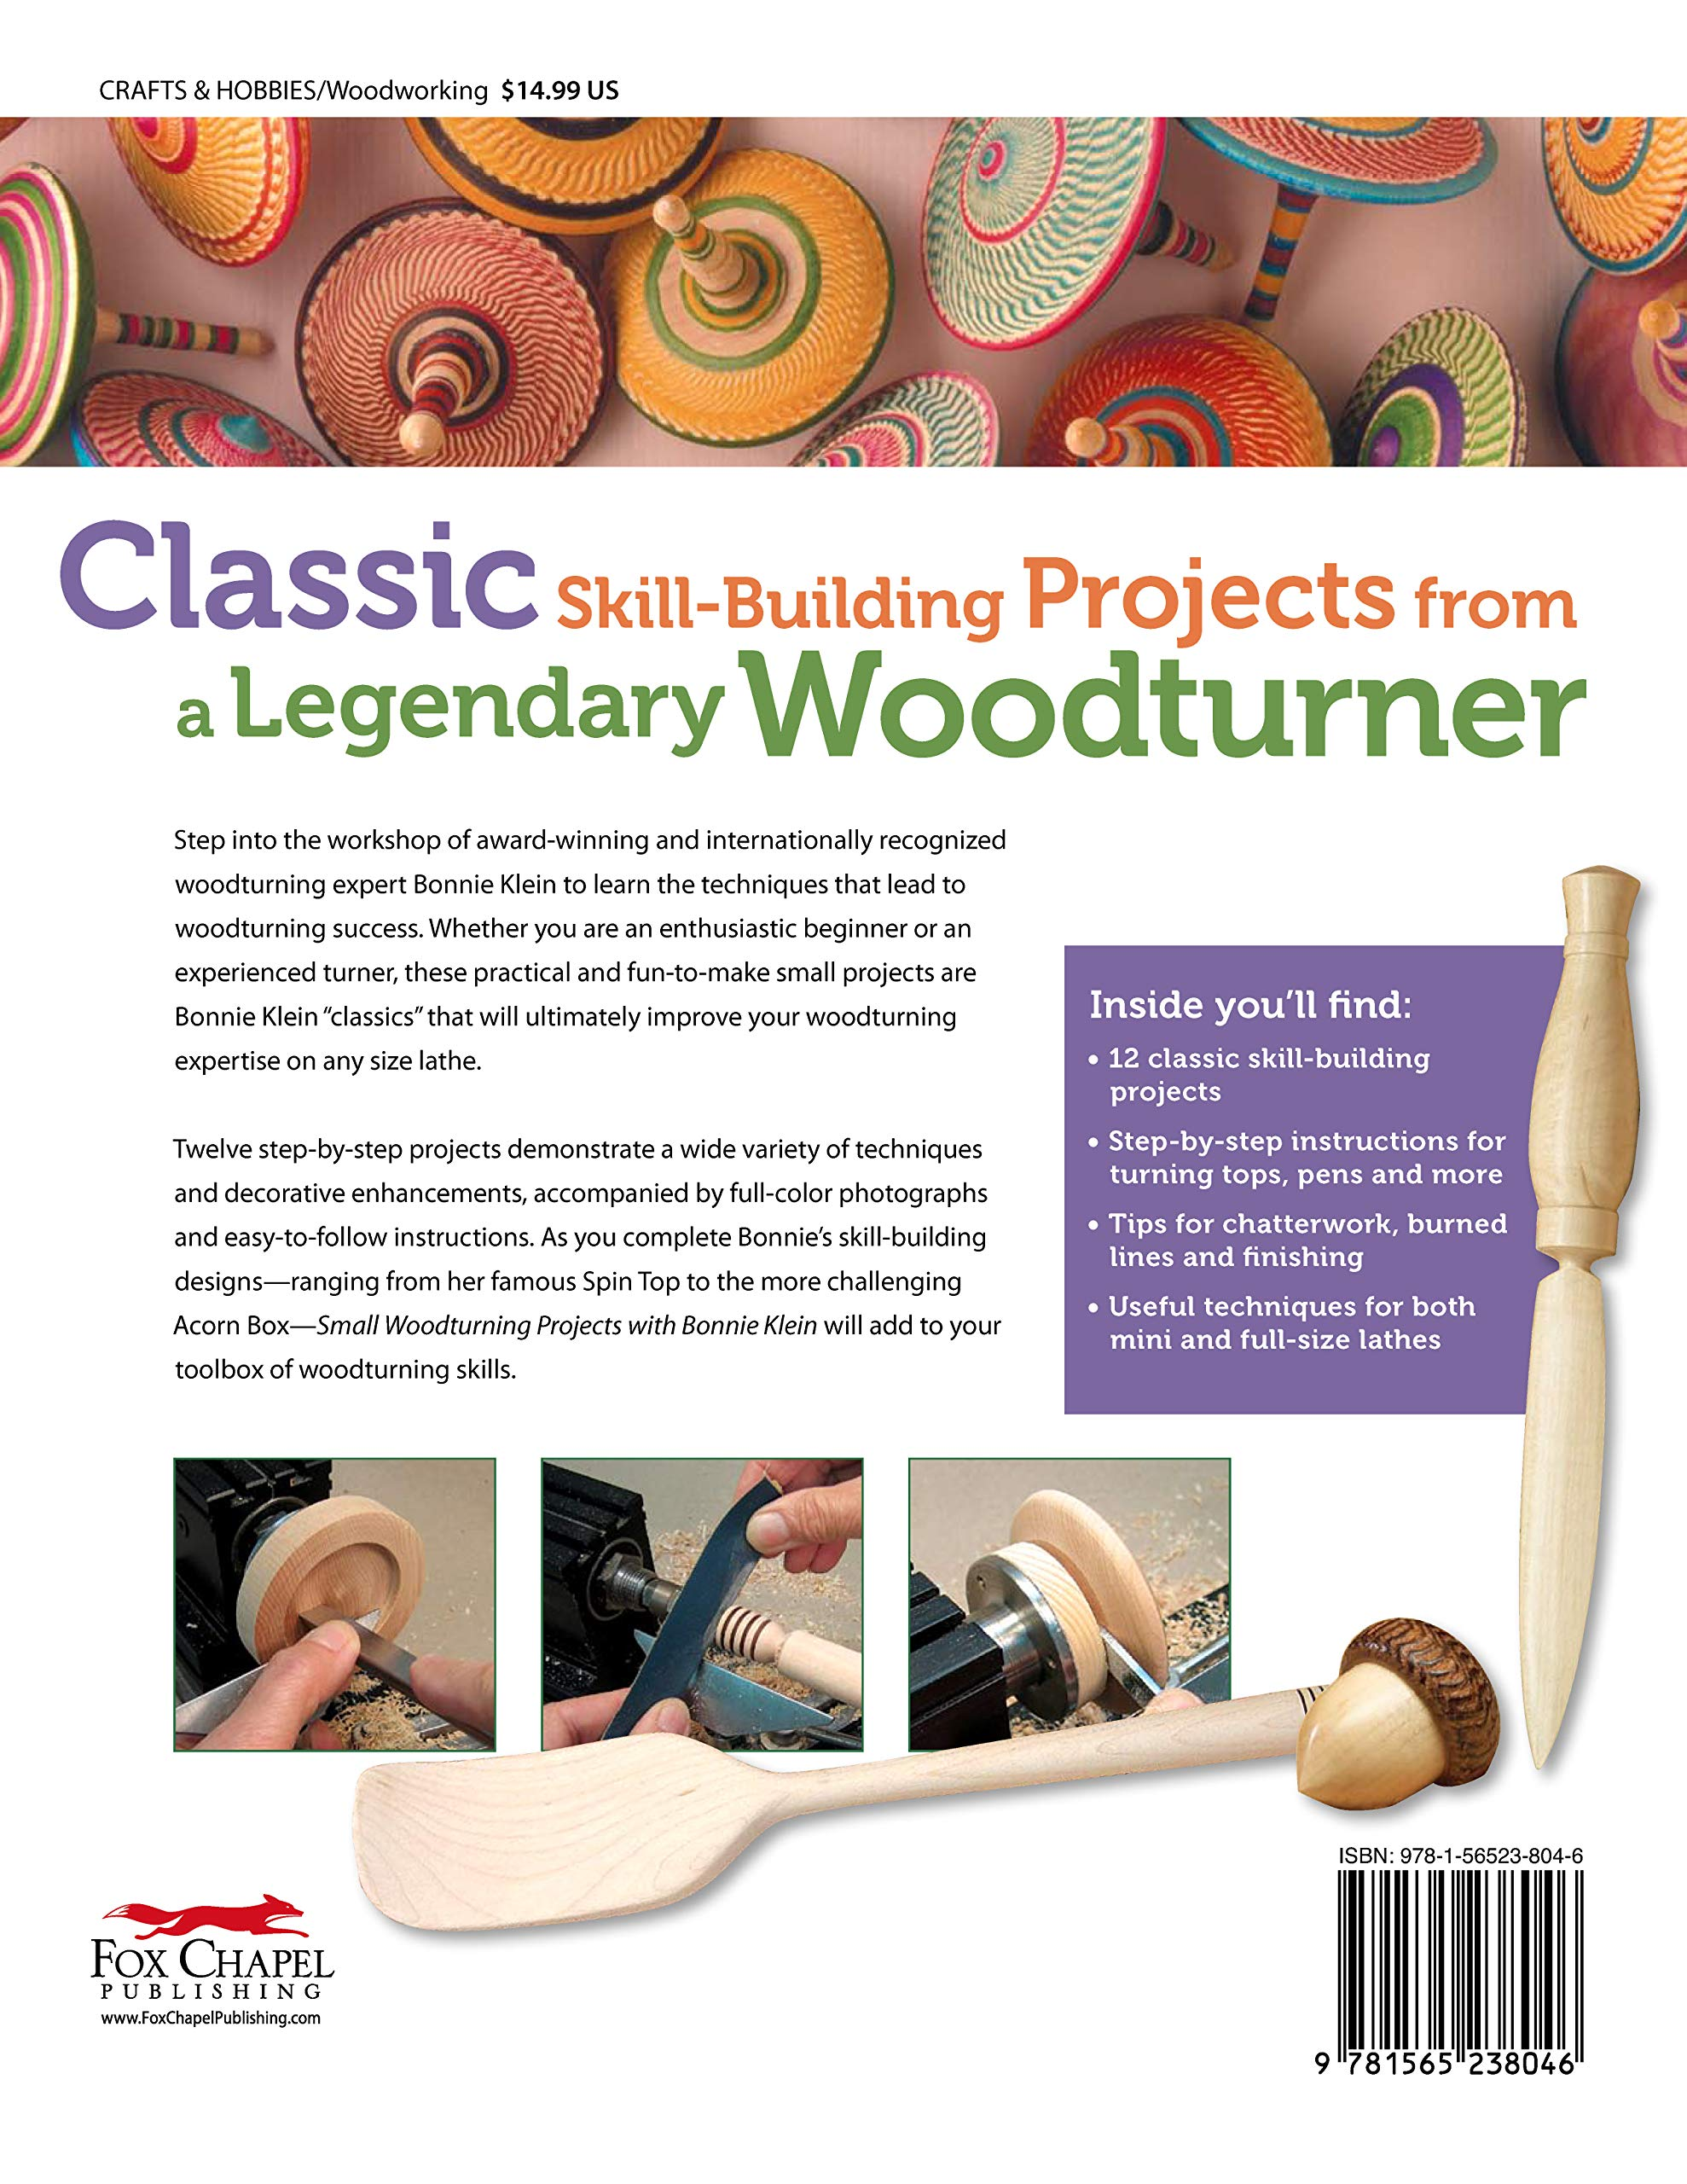 Small Woodturning Projects With Bonnie Klein 12 Skill Building